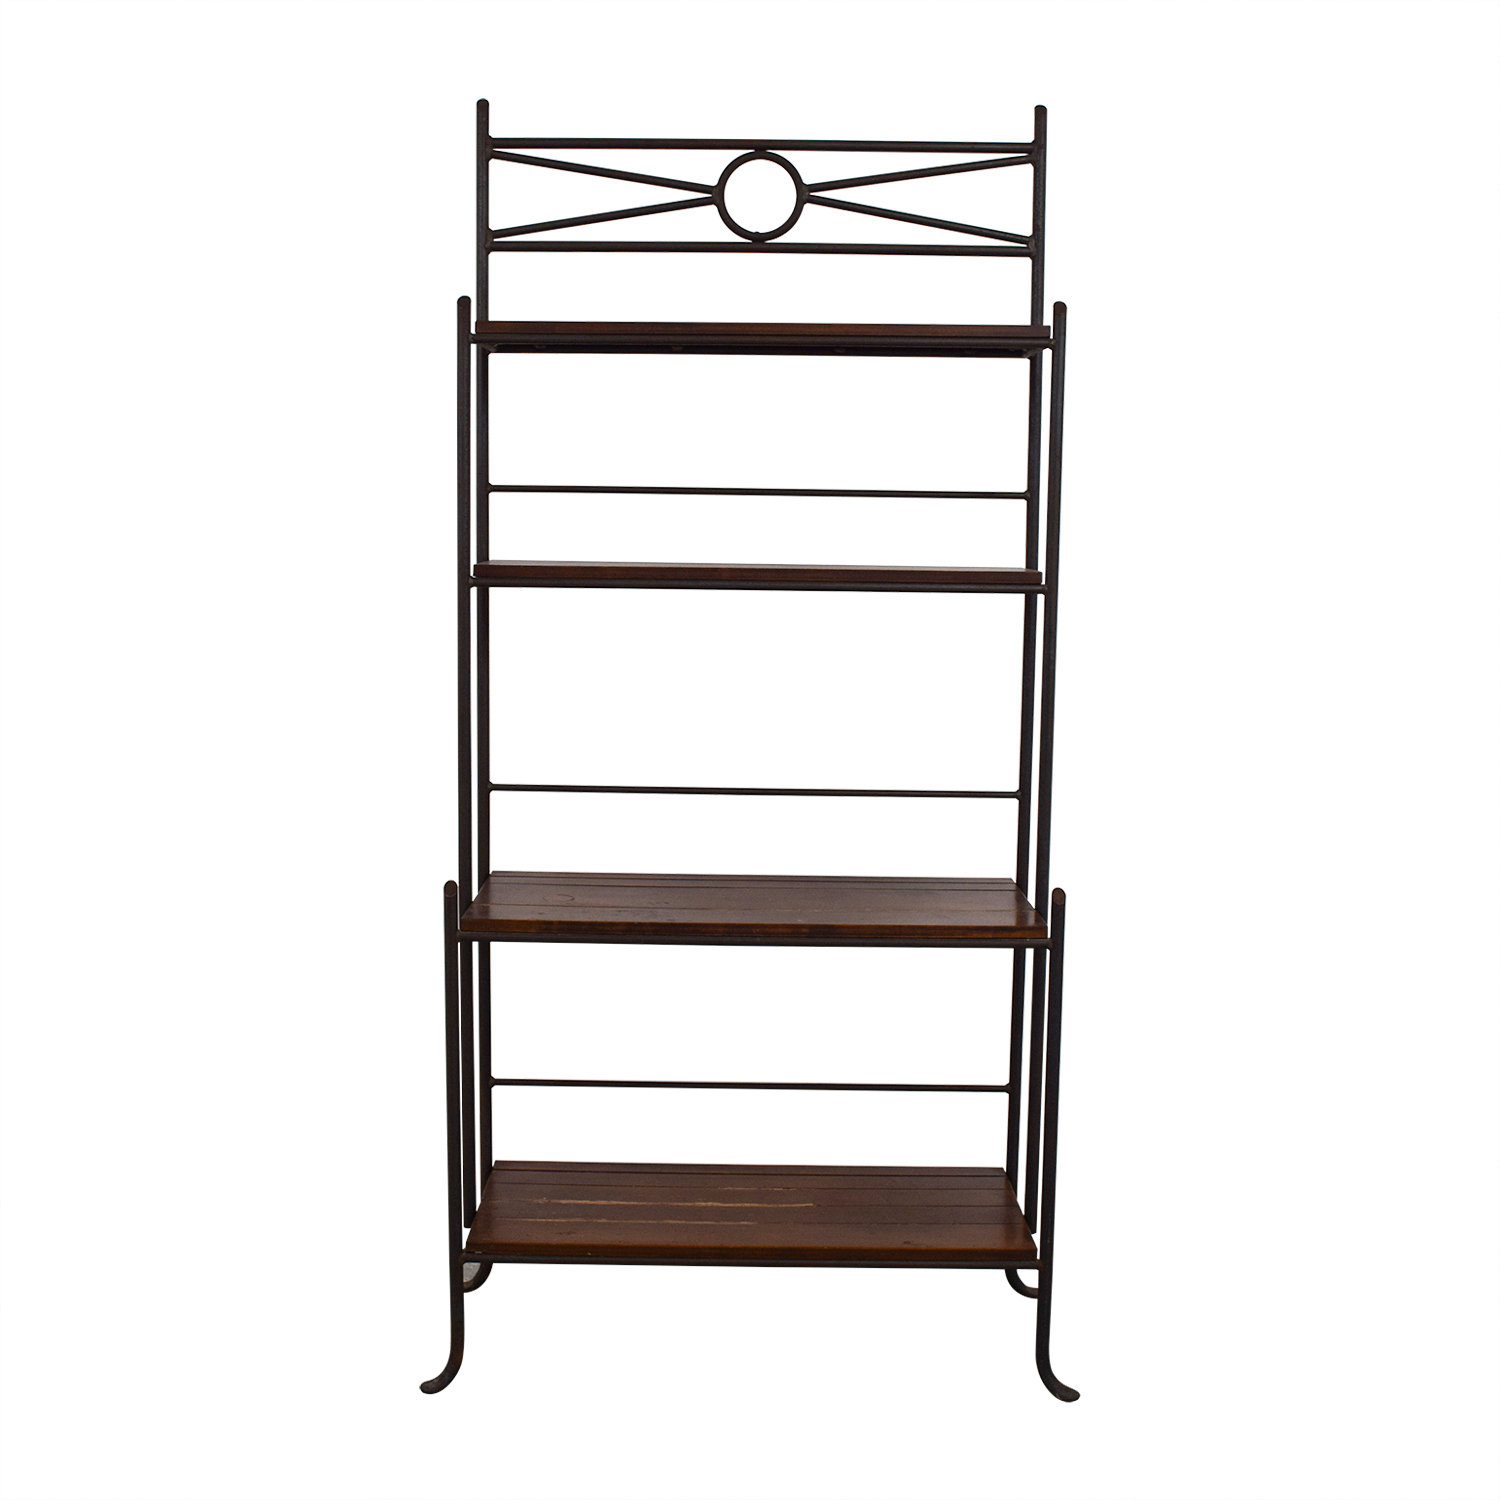 shop Crate & Barrel Wood and Metal Book Case Crate & Barrel Bookcases & Shelving